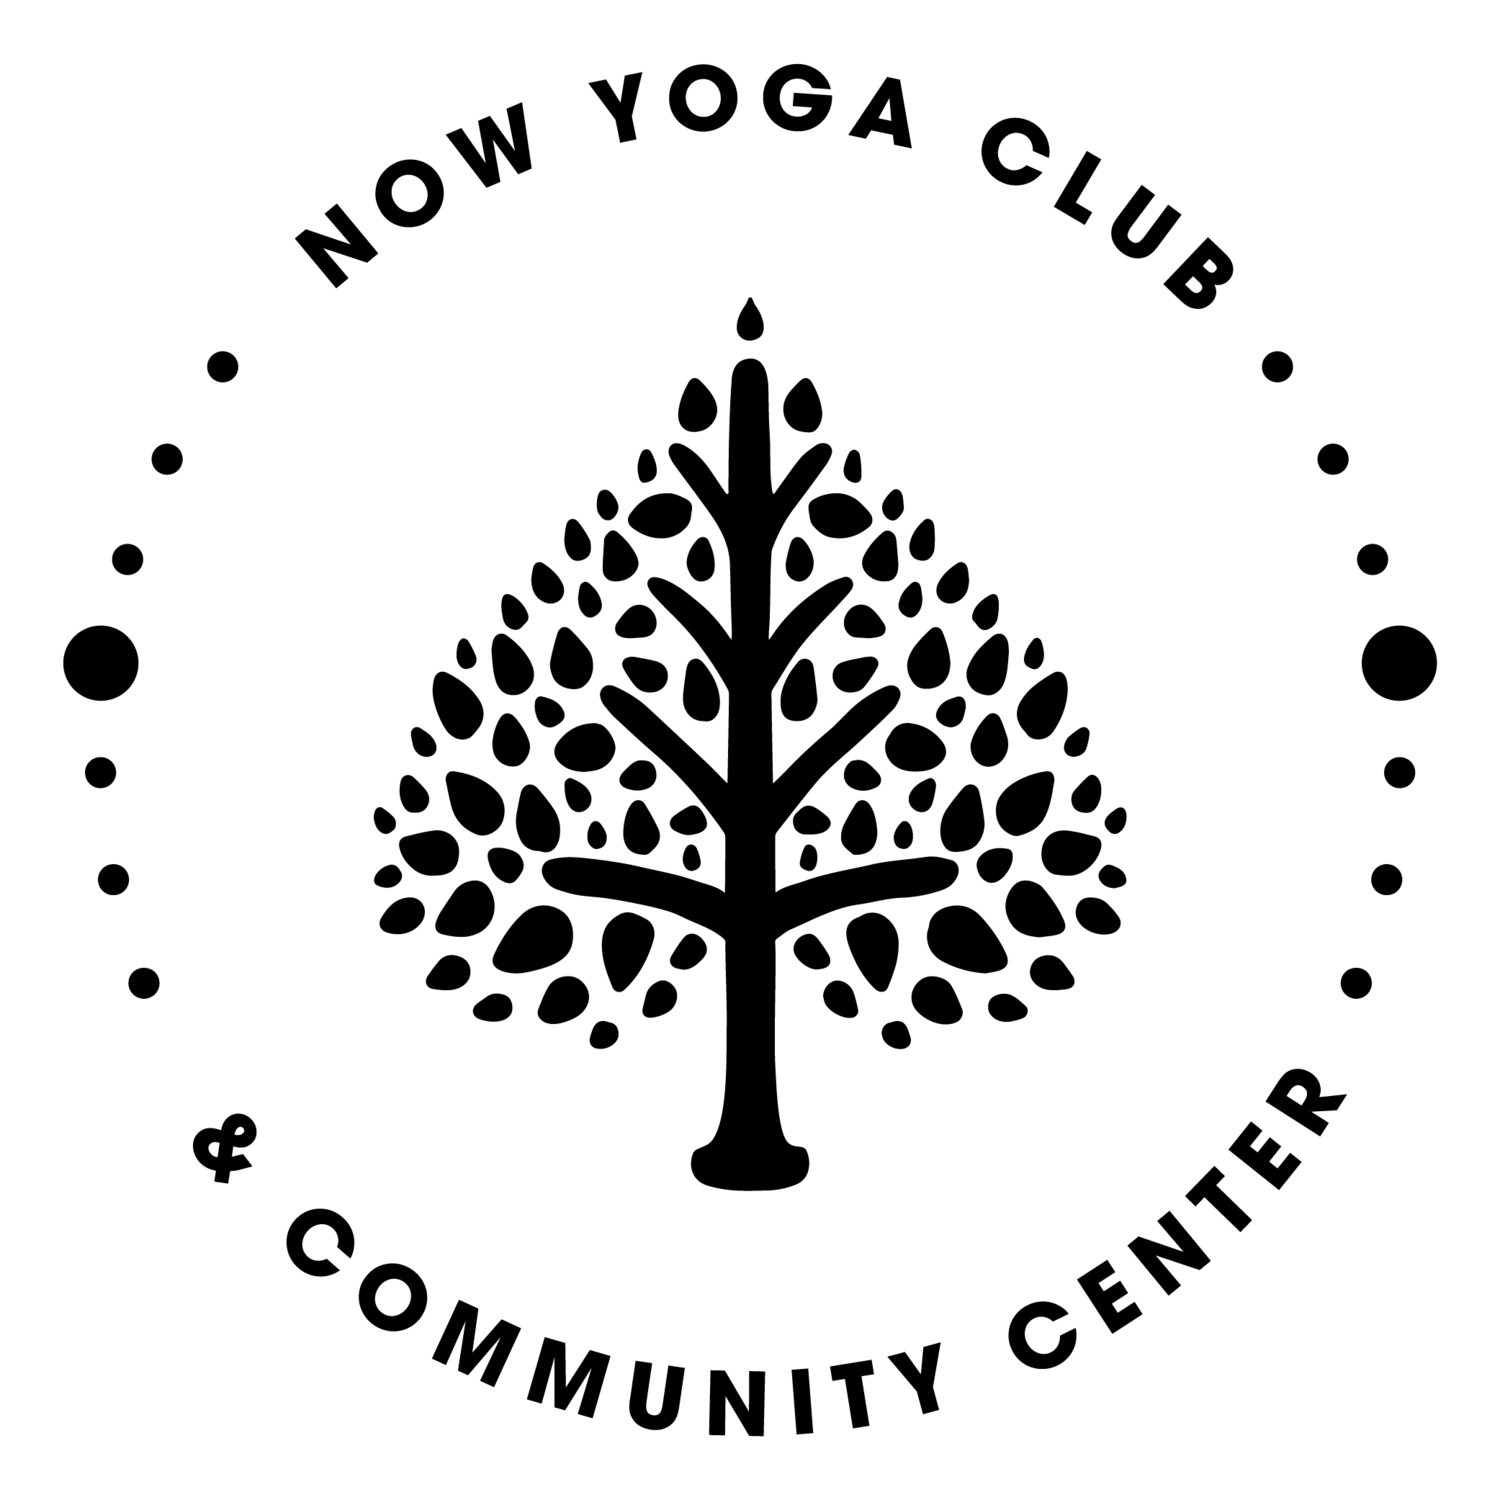 Now Yoga Club